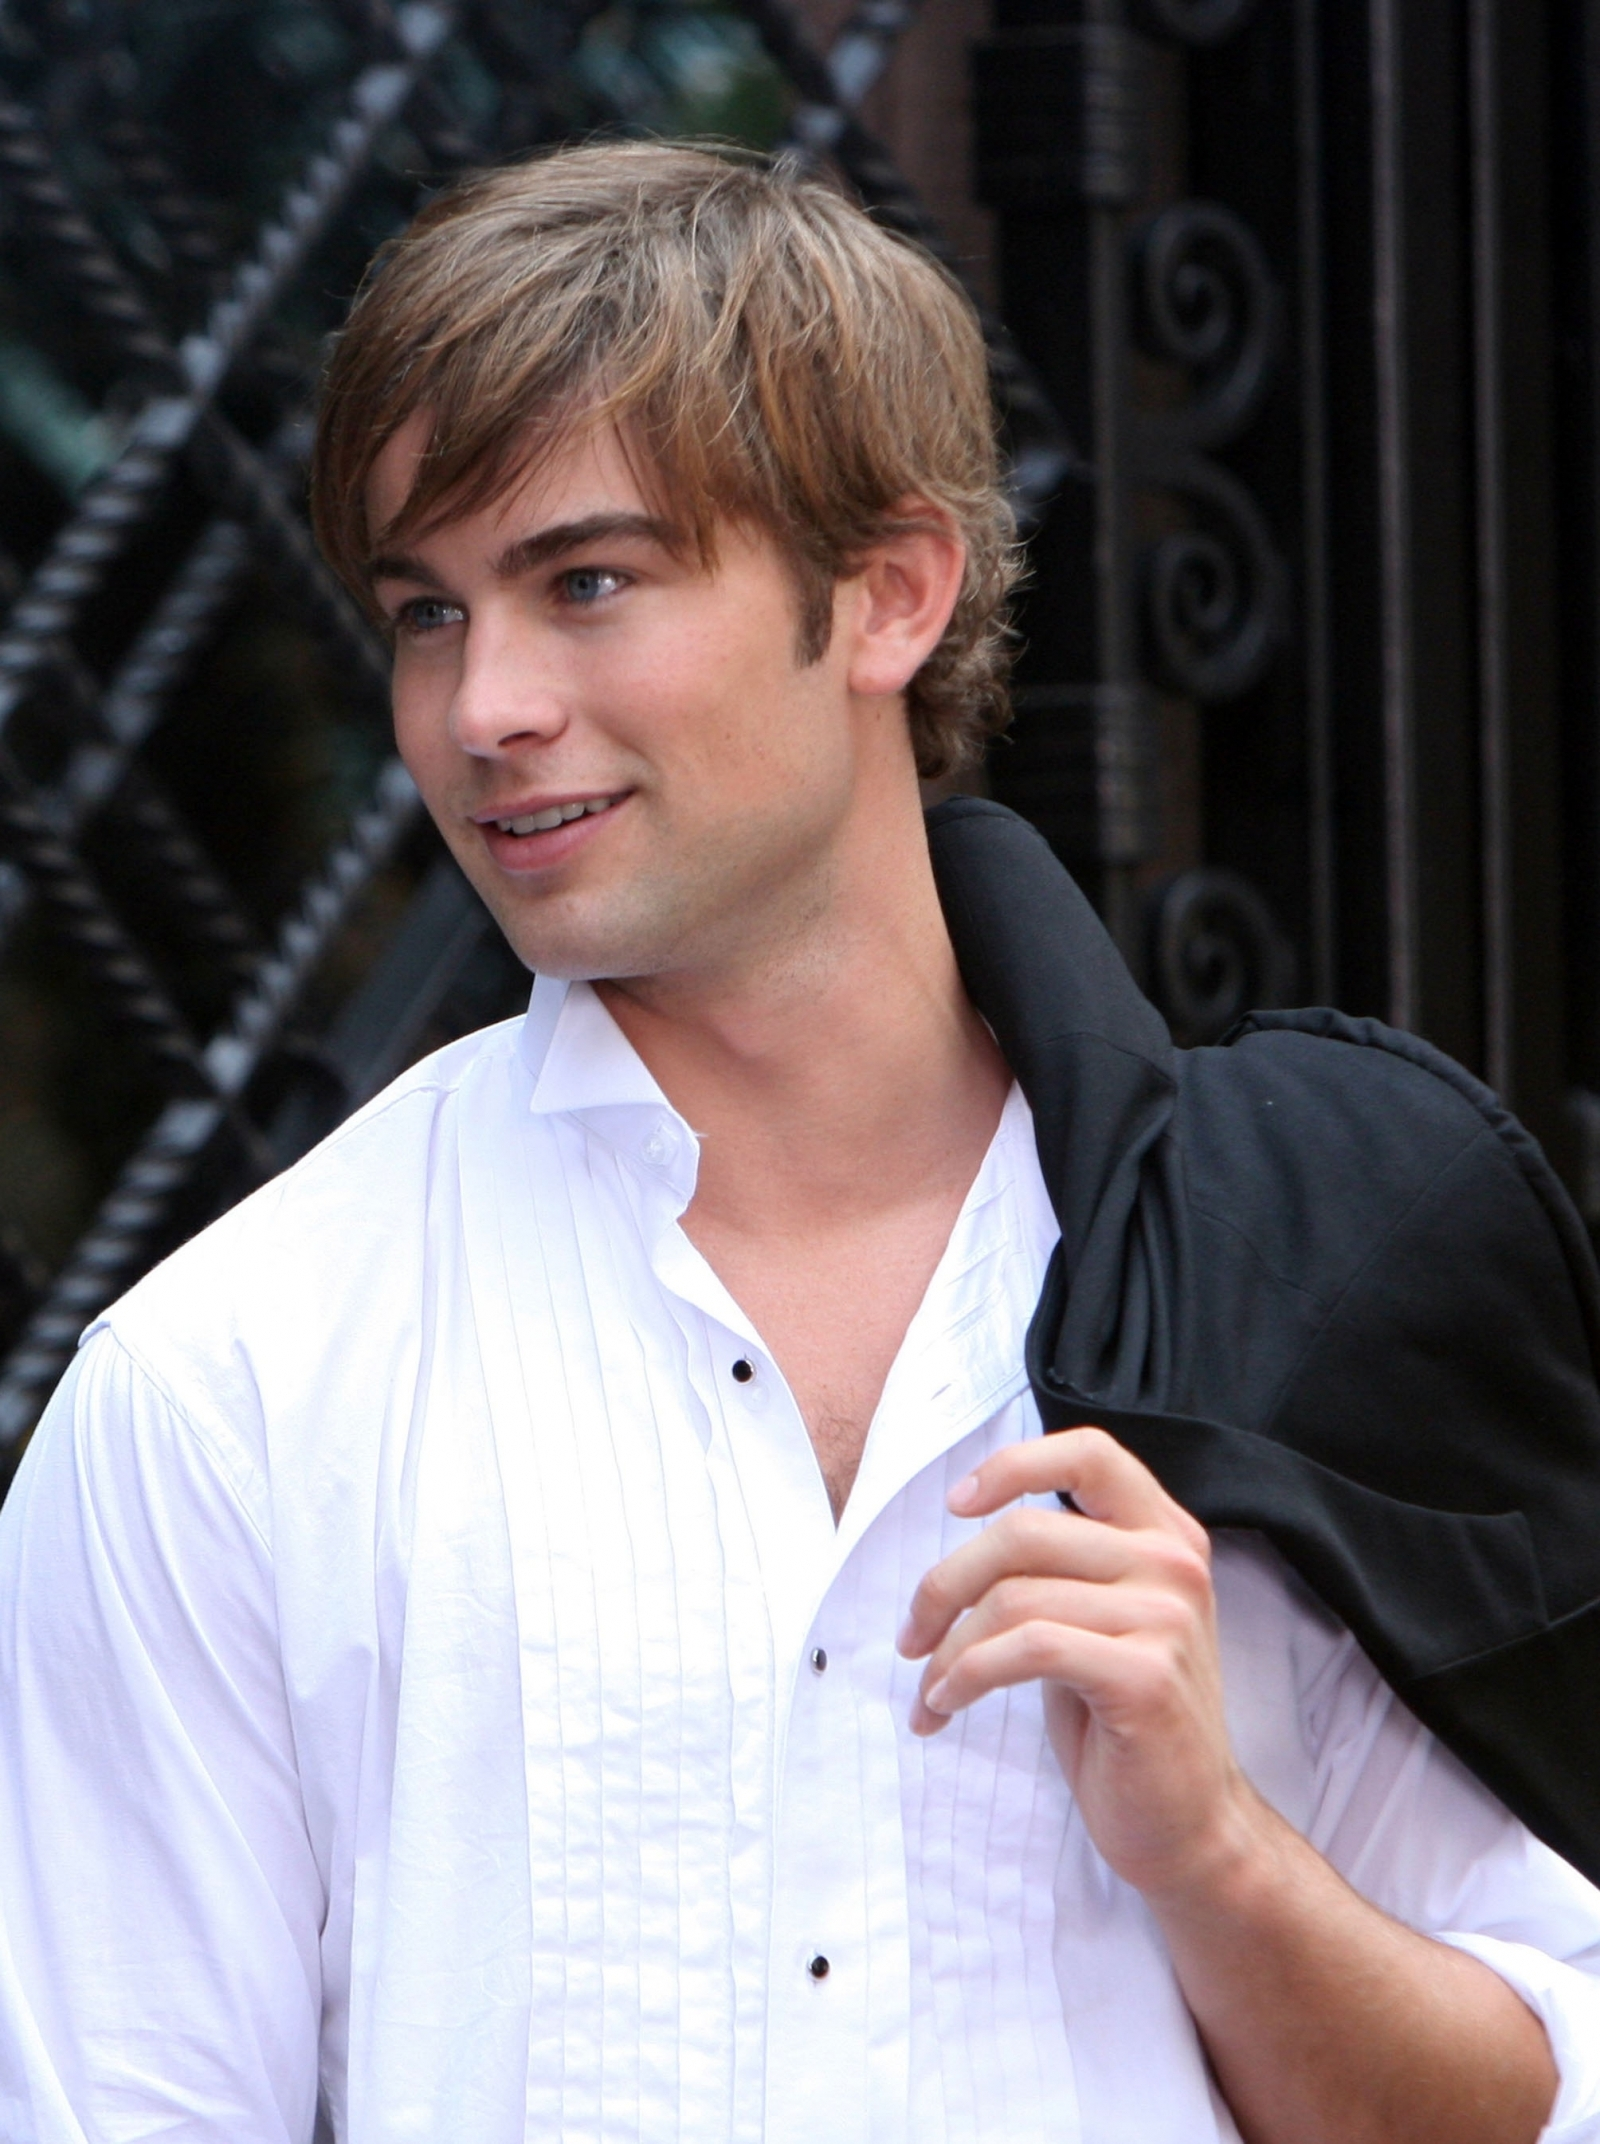 Chace Crawford Iphone Images